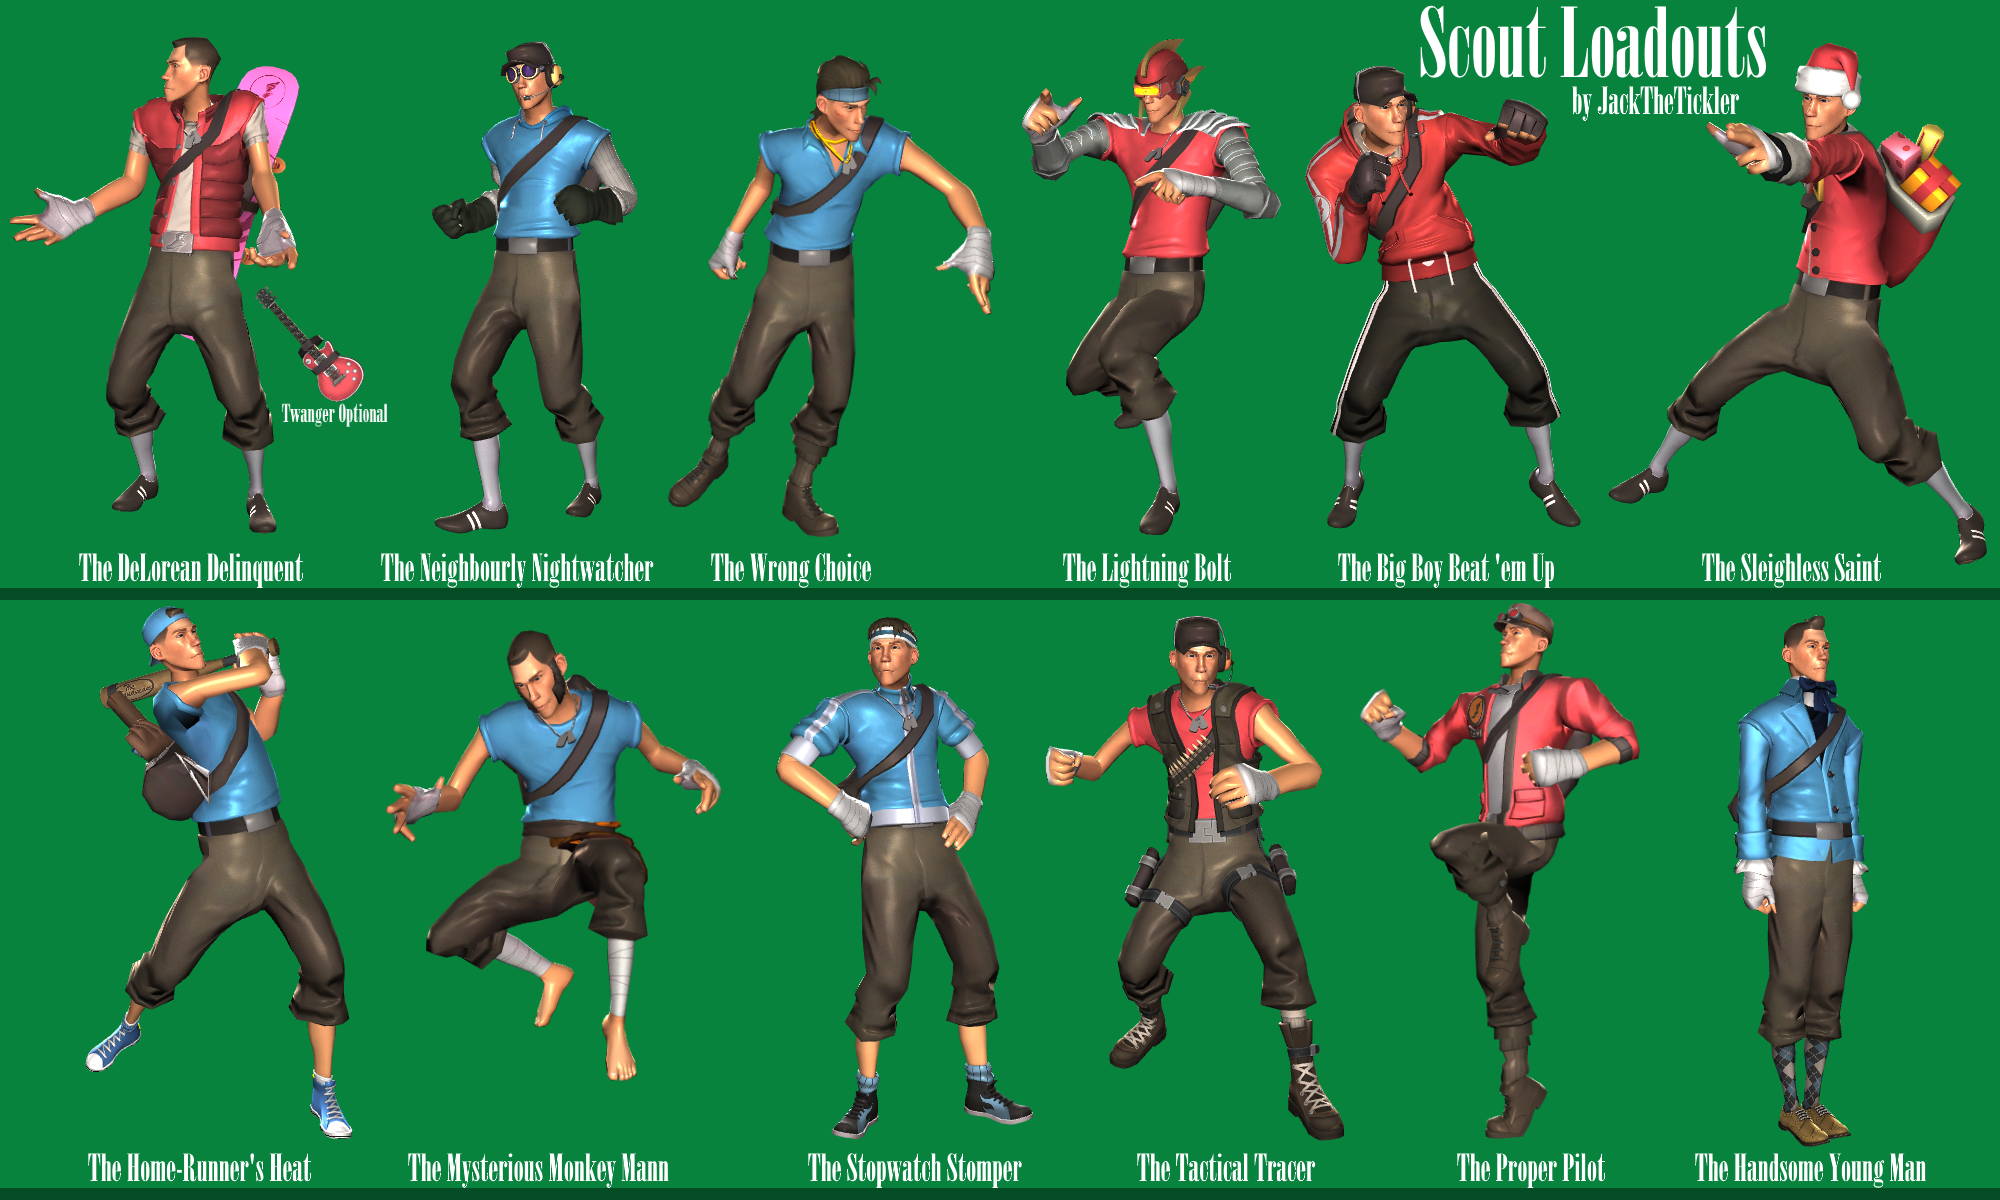 Tf2 soldier cosmetics quotes - Scout Cosmetic Loadouts Games Teamfortress2 Steam Tf2 Steamnewrelease Gaming